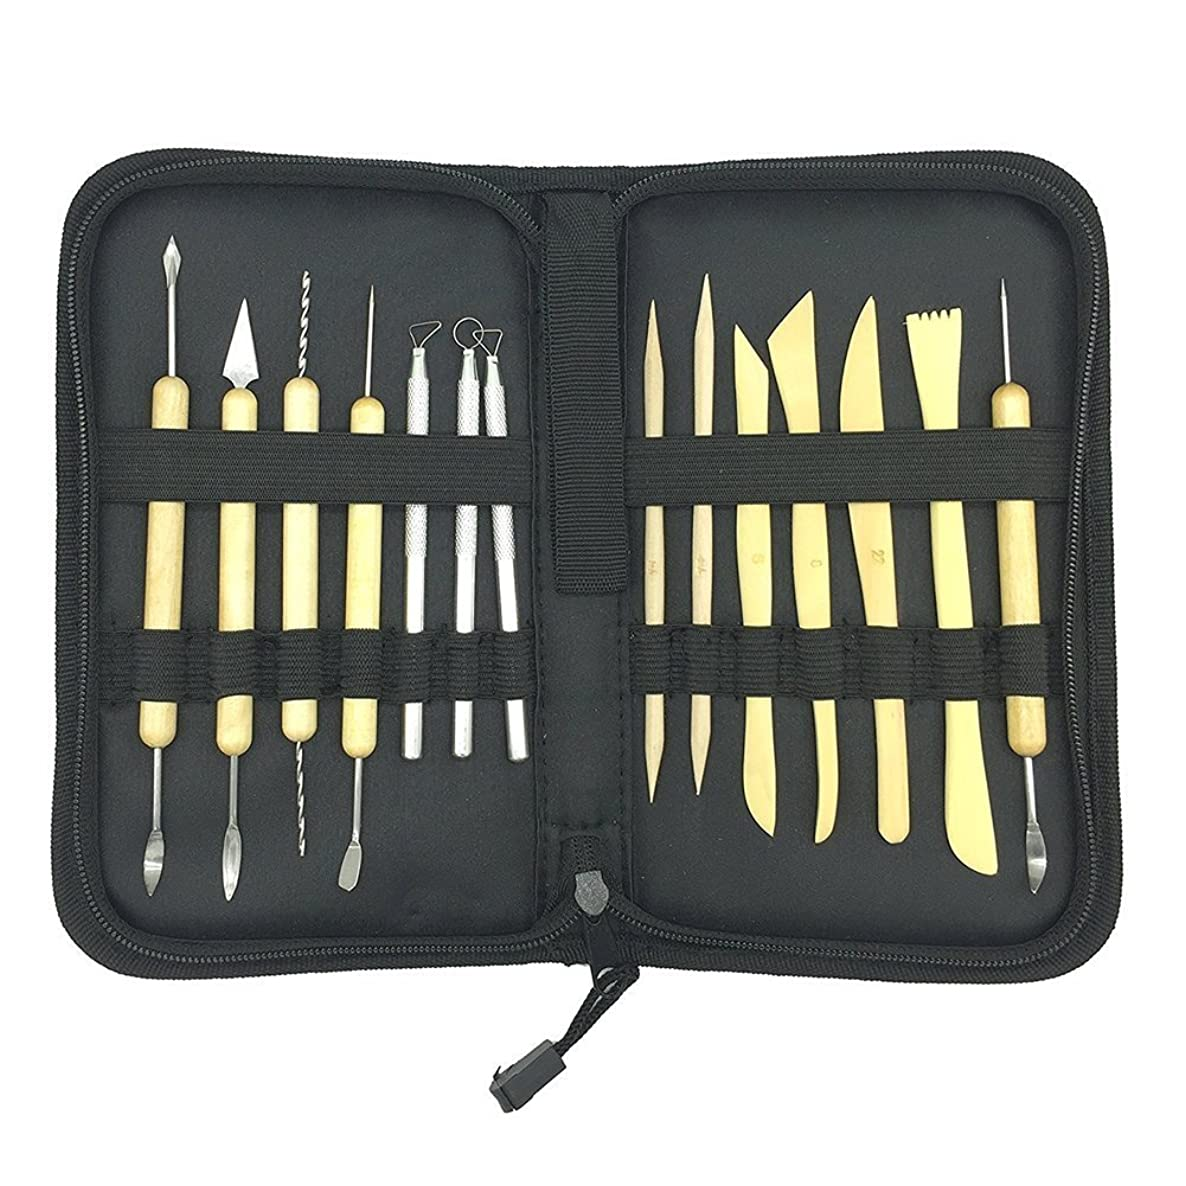 PRUGNA Sculpting Tools, [14 Piece] Clay Carving Set, Contains 25 Types of Tools for Pottery Art